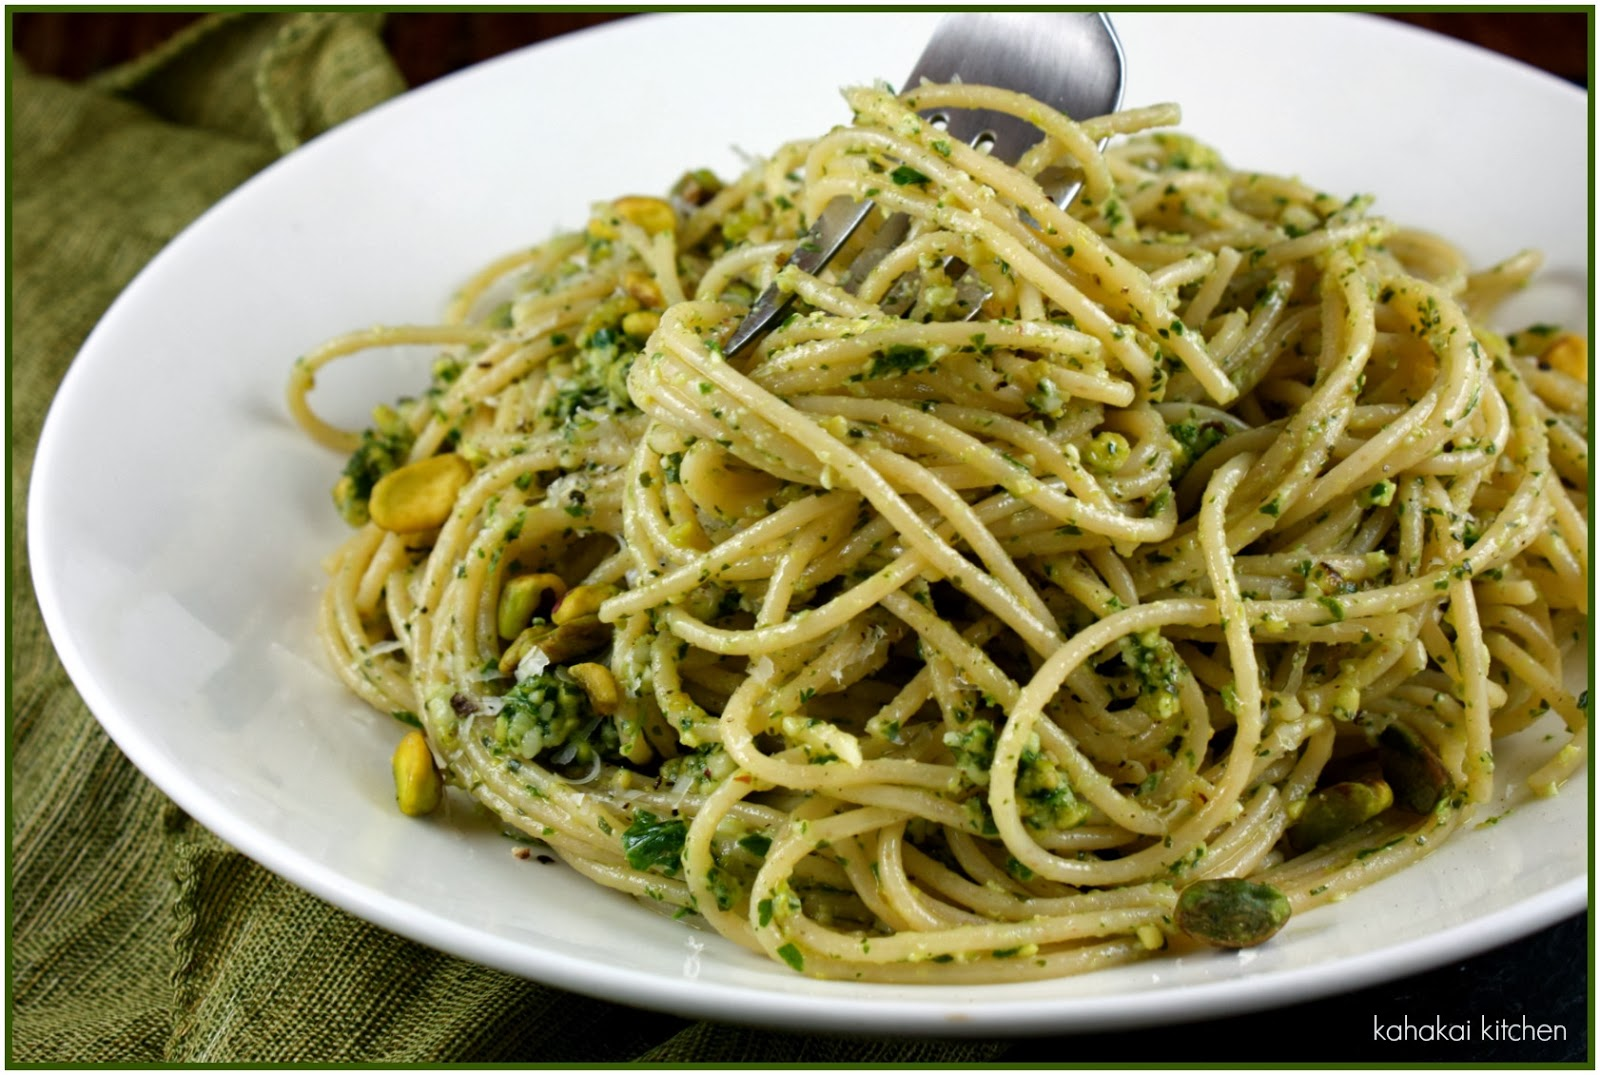 Kahakai Kitchen: Mint & Pistachio Pesto (In Pasta & On Flatbread)